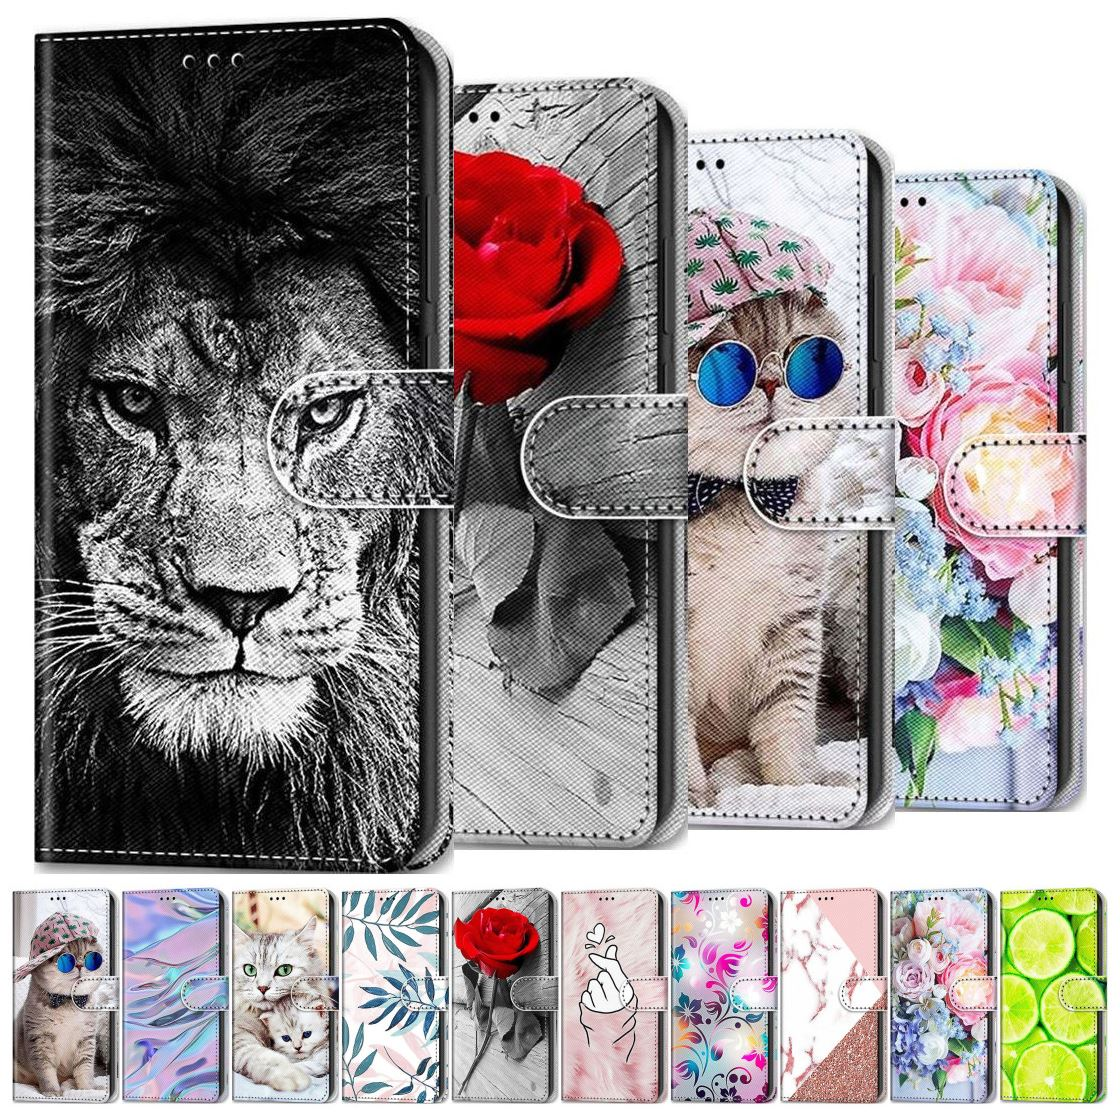 Rose Lion Painted Phone Shell For Wallet Huawei P8 Lite 2015 P9 Lite 2016 2017 P10 Lite Mate 10 20 L